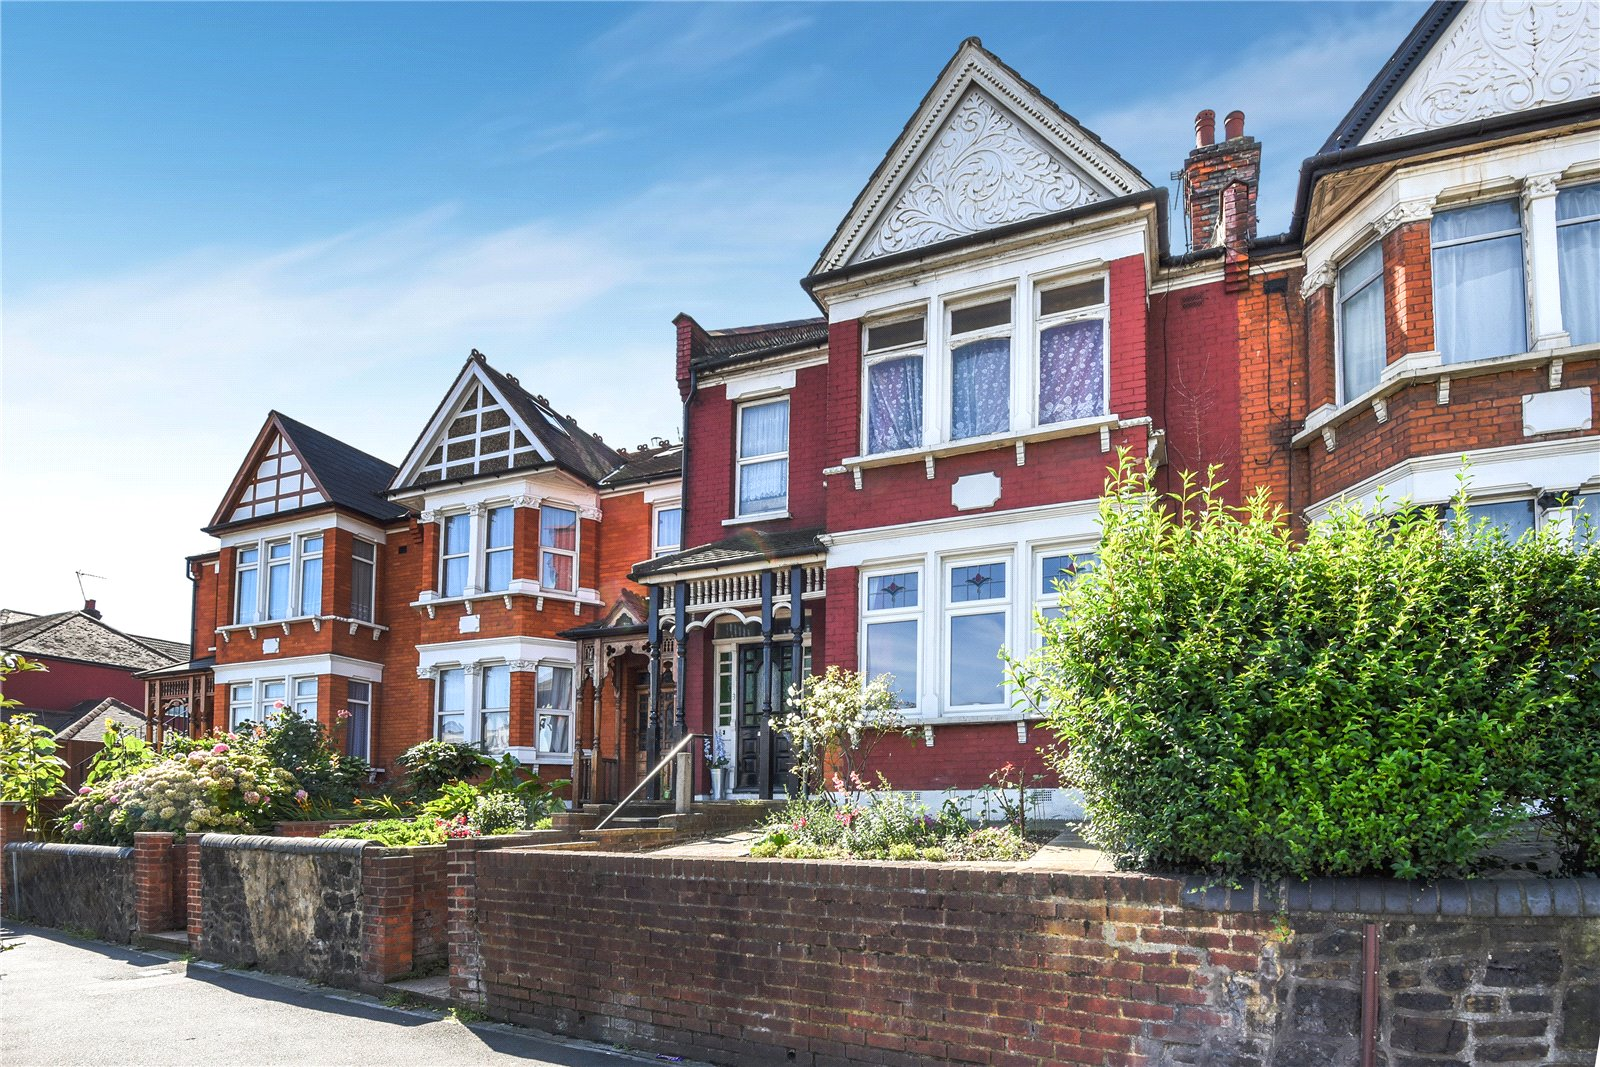 2 Bedrooms Flat for sale in Bowes Road Bounds Green London N11